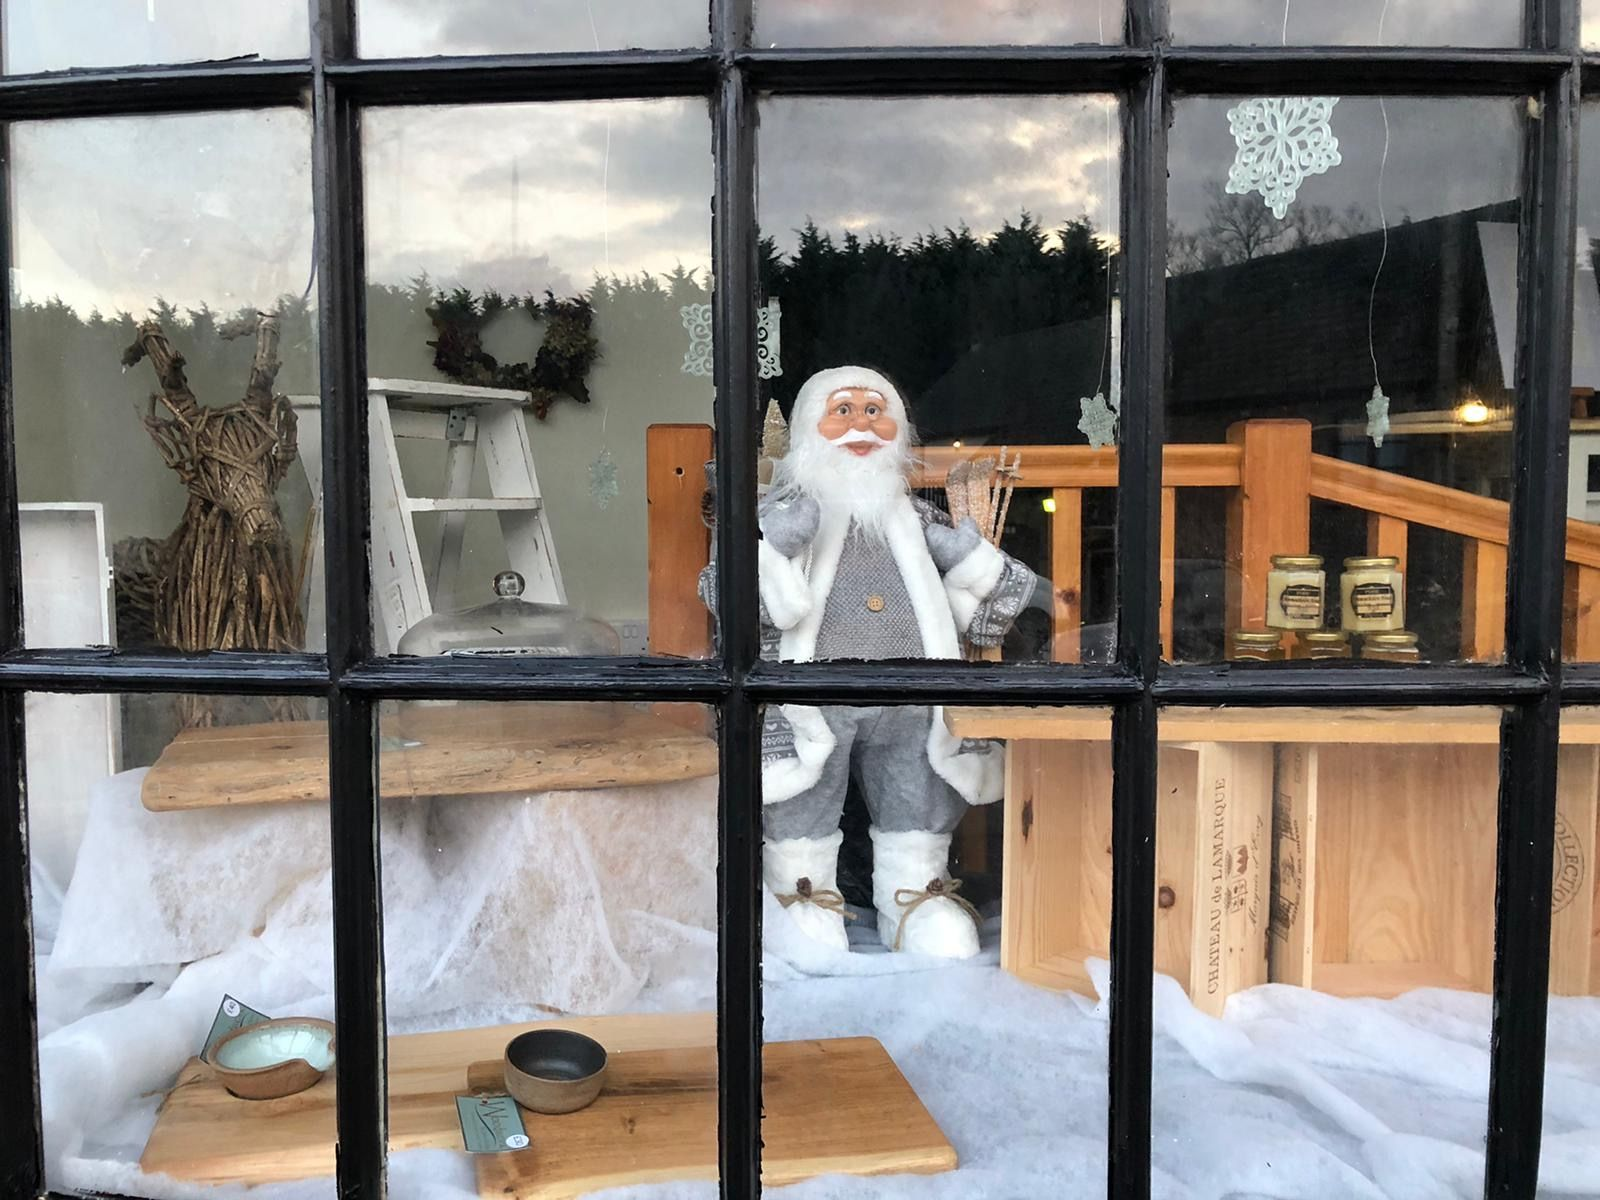 The Cwtch luxury Welsh gift shop window